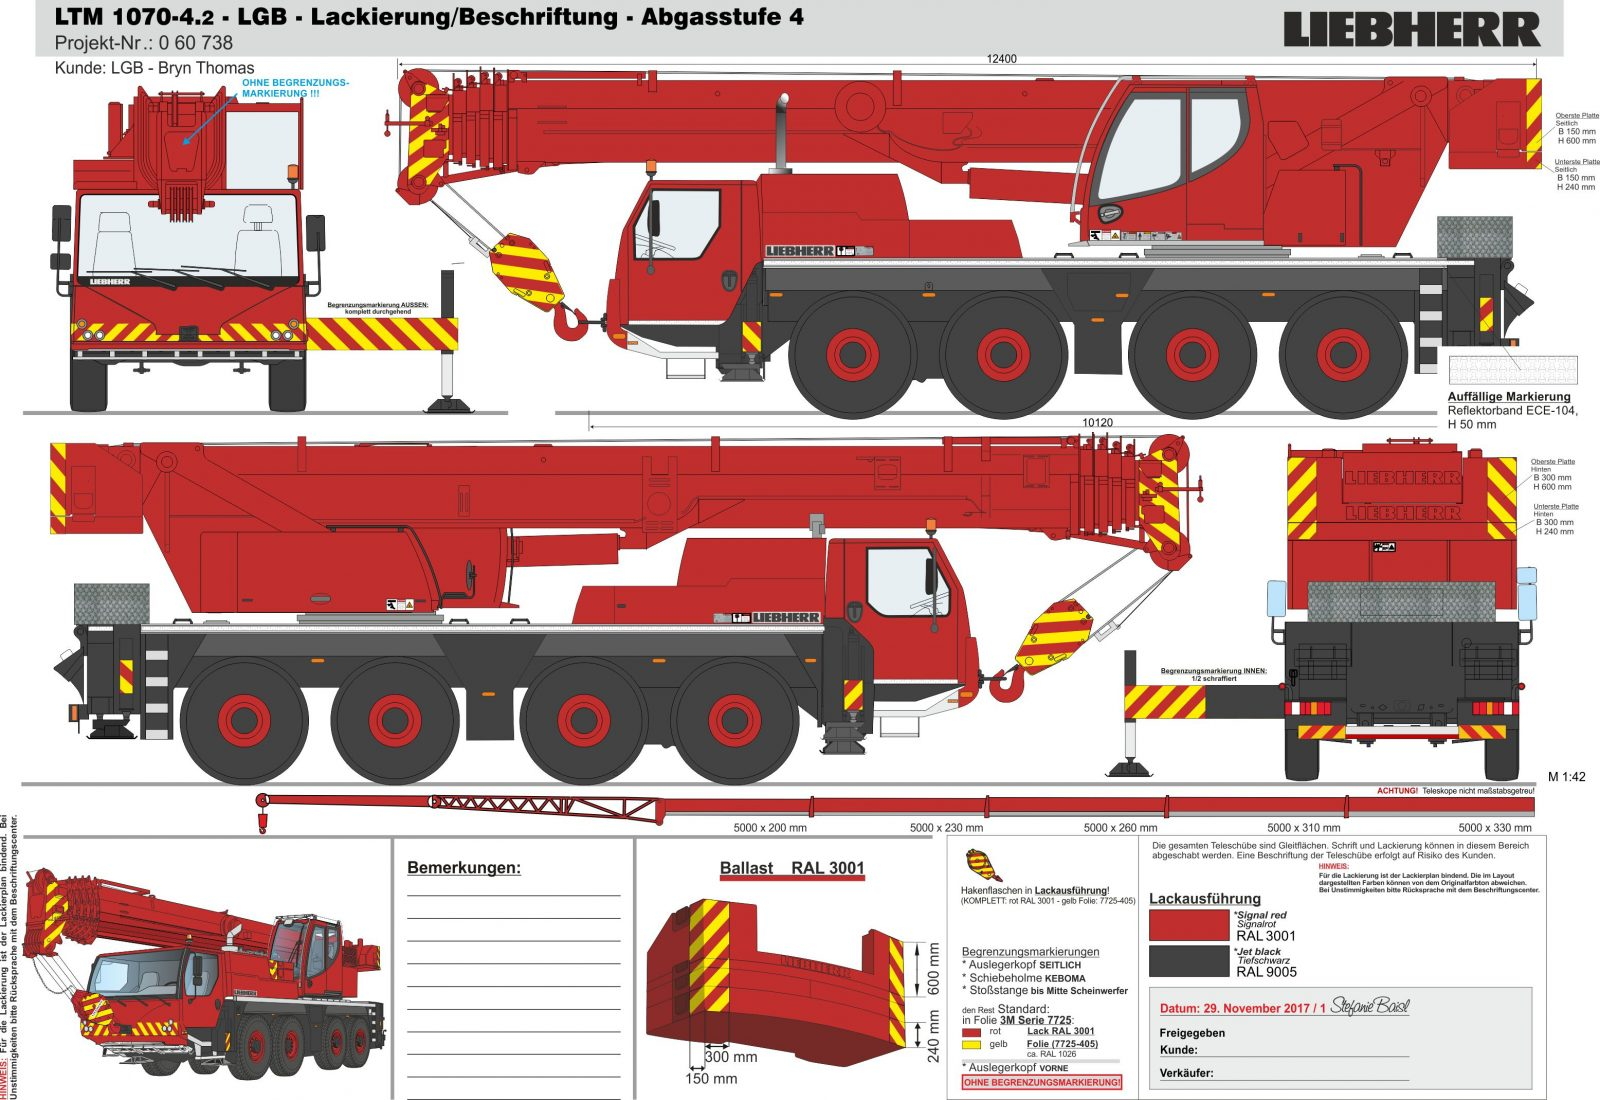 Diagram of Bryn Thomas Cranes Liebherr Fleet